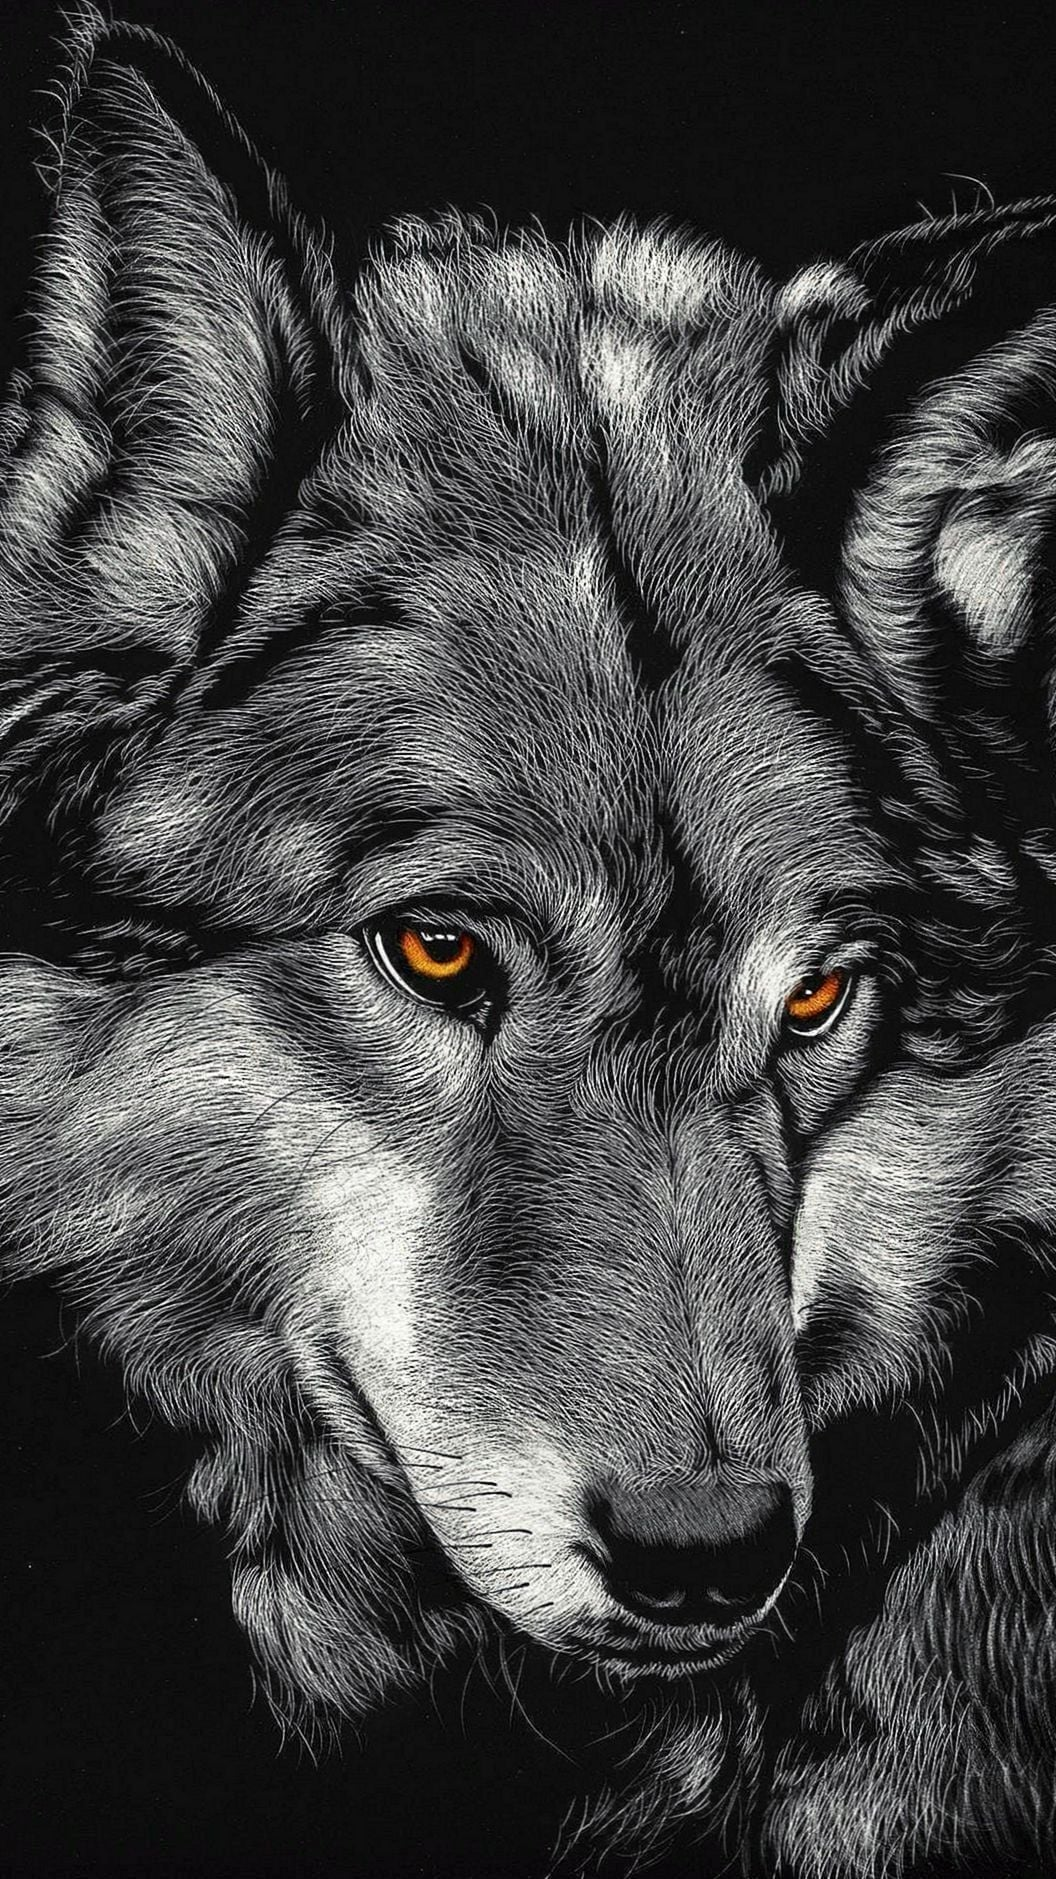 Iphone 6s Plus Wolf Wallpaper Iphone 11 Pro Wallpaper 4k Hd Wolf 1056x1879 Download Hd Wallpaper Wallpapertip